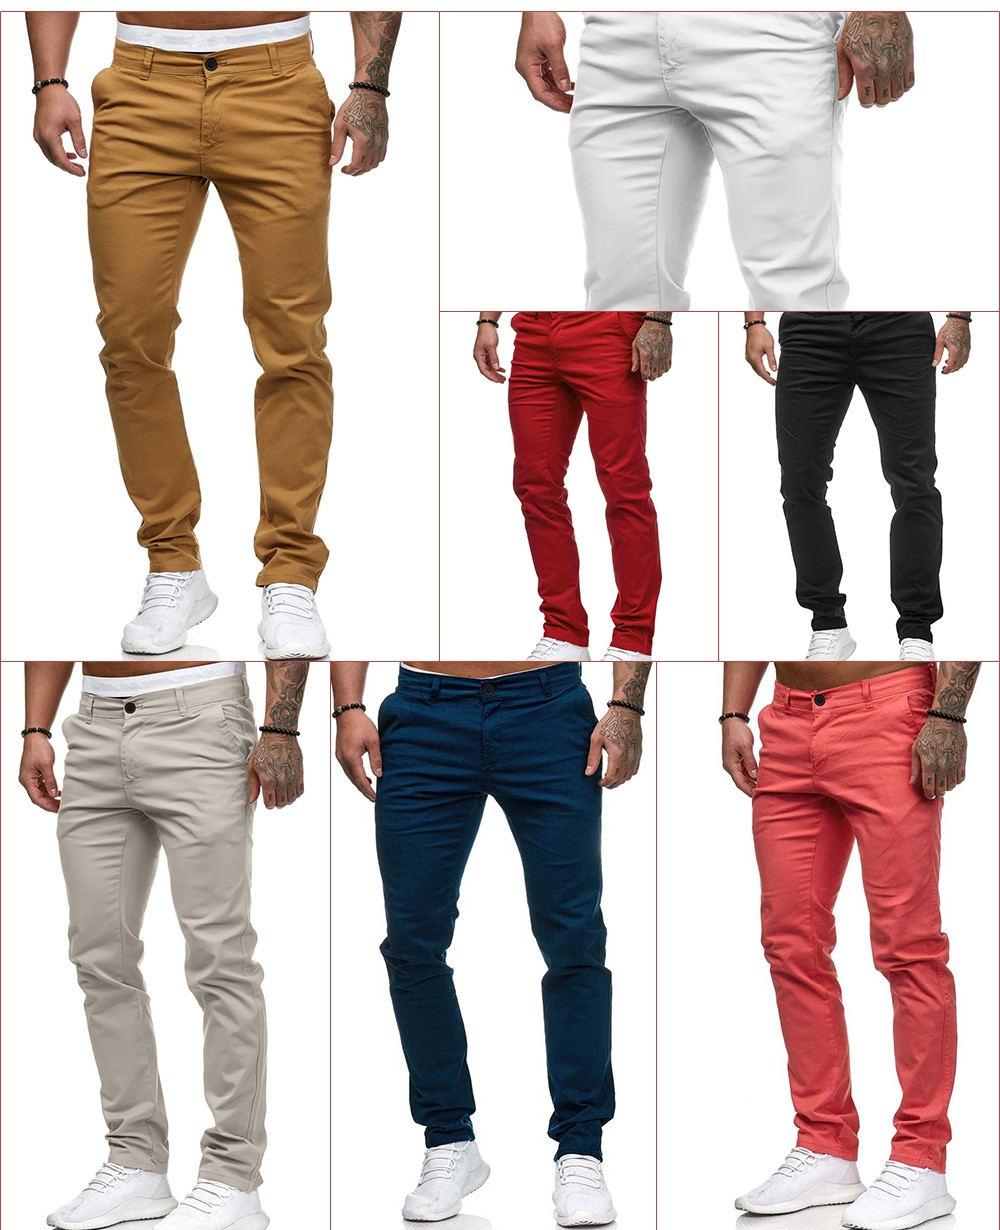 2021 Spring Casual Trousers Men's Solid Color Trousers - Yellow 2XL